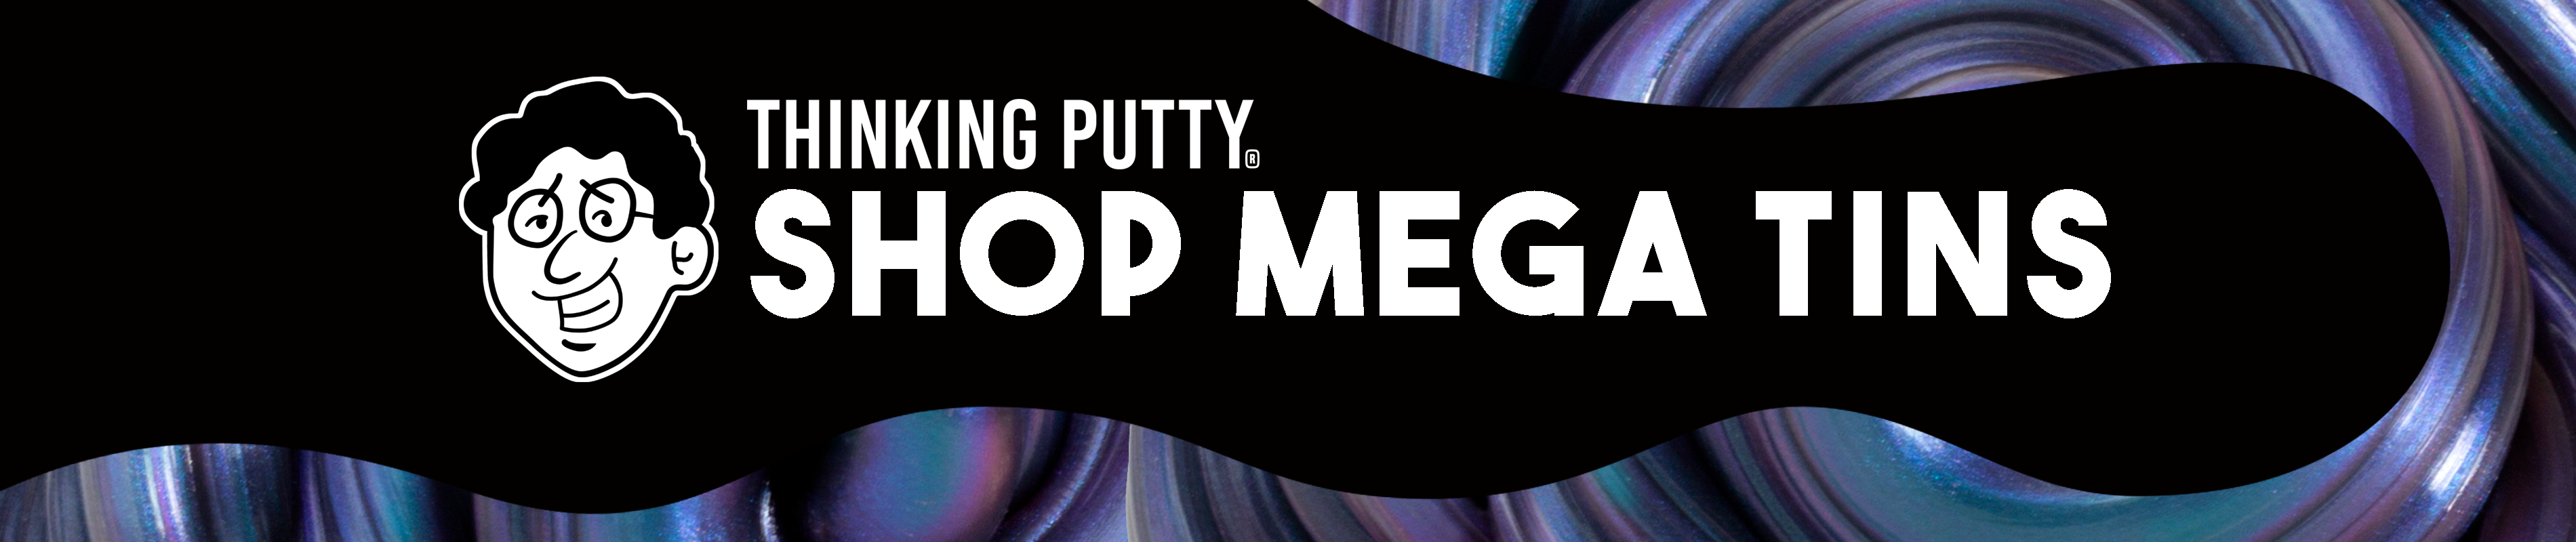 Shop Mega Thinking Putty